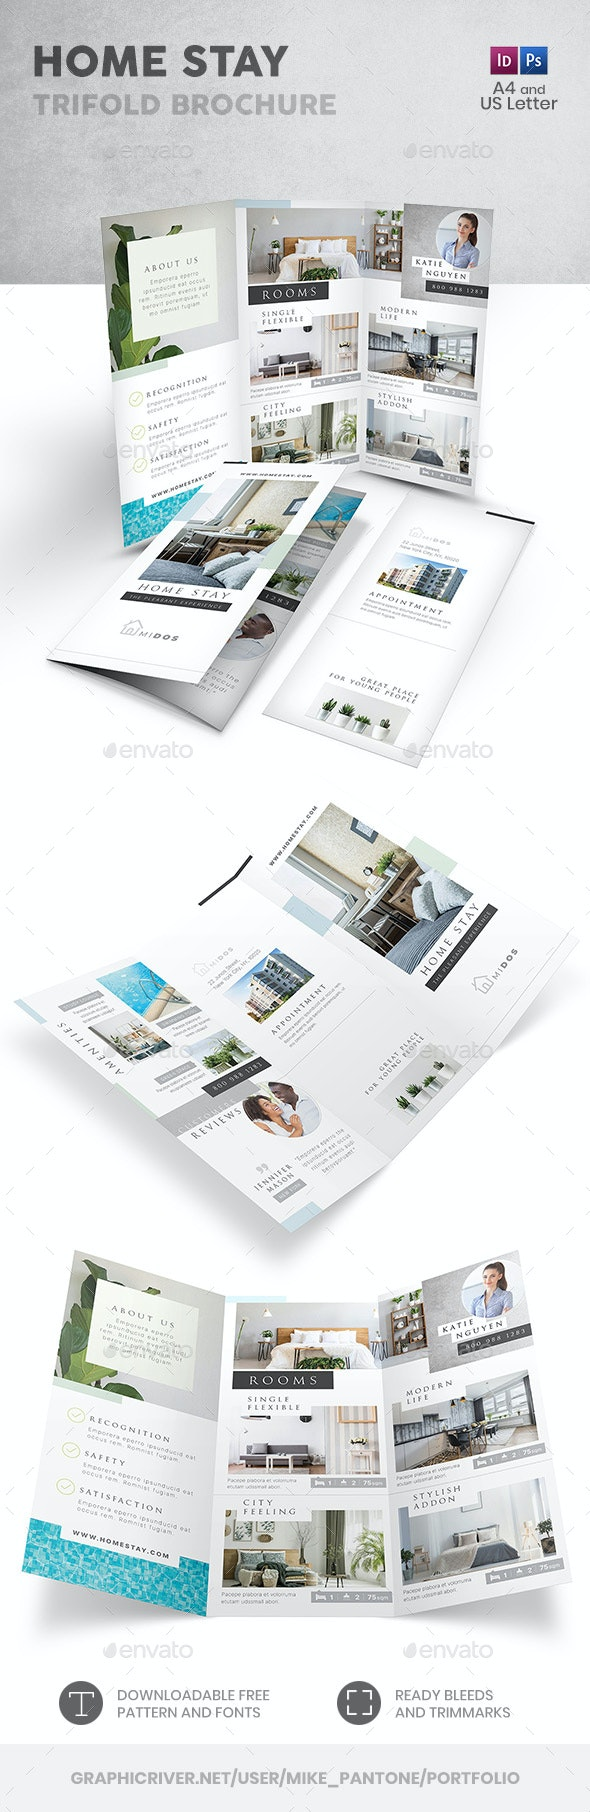 Home Stay Trifold Brochure - Informational Brochures